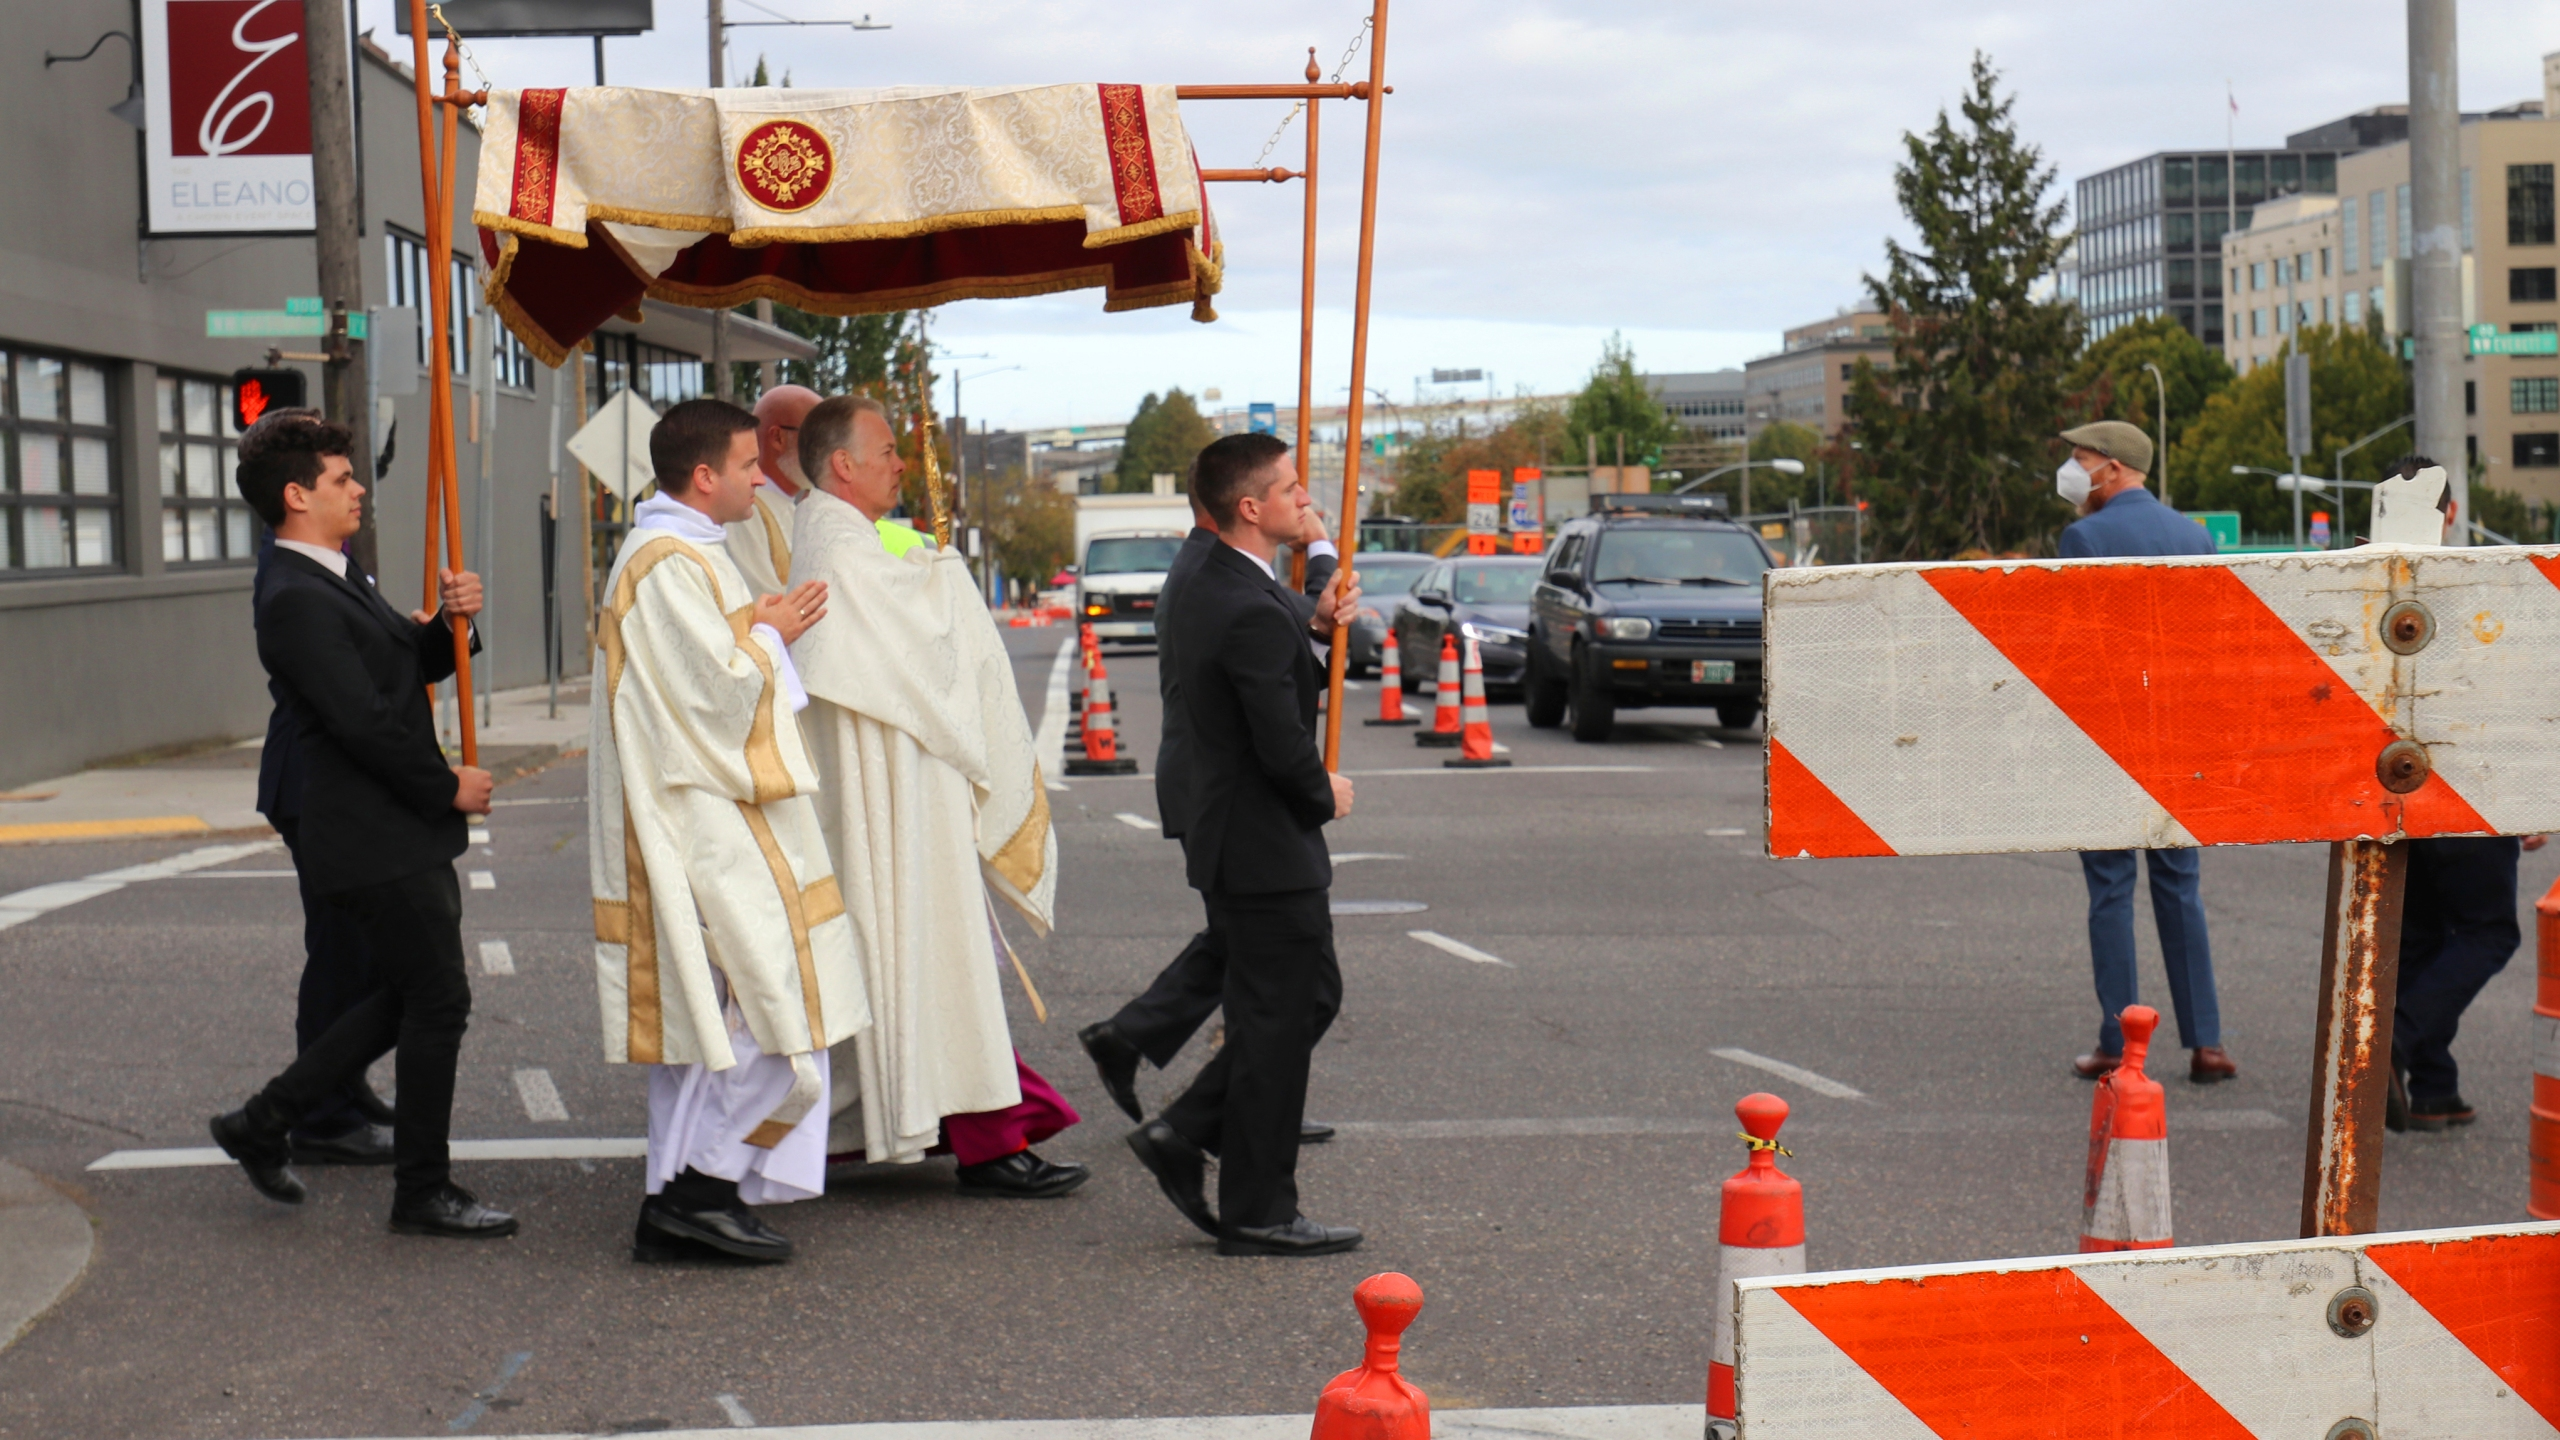 Archbishop Alexander Sample carries the Eucharist into downtown Portland, Ore., for an exorcism and rosary to bring peace and justice to the city on Oct. 17, 2020. (Ed Langlois/Catholic Sentinel via AP)